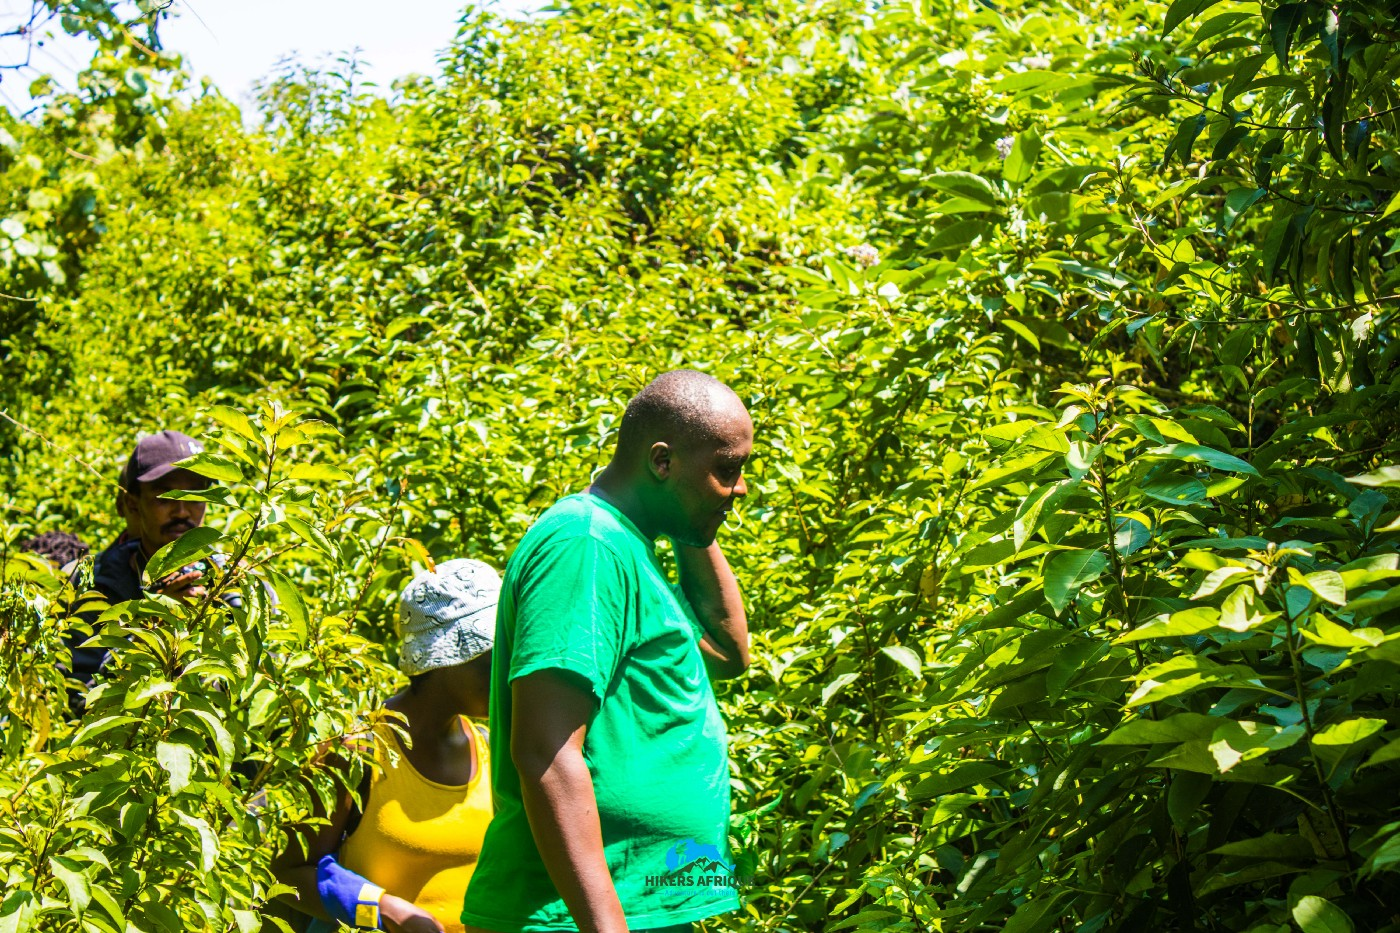 Cliff Njuguna and other hikers looking waiting for wild strawberries along the Gatamaiyu trail